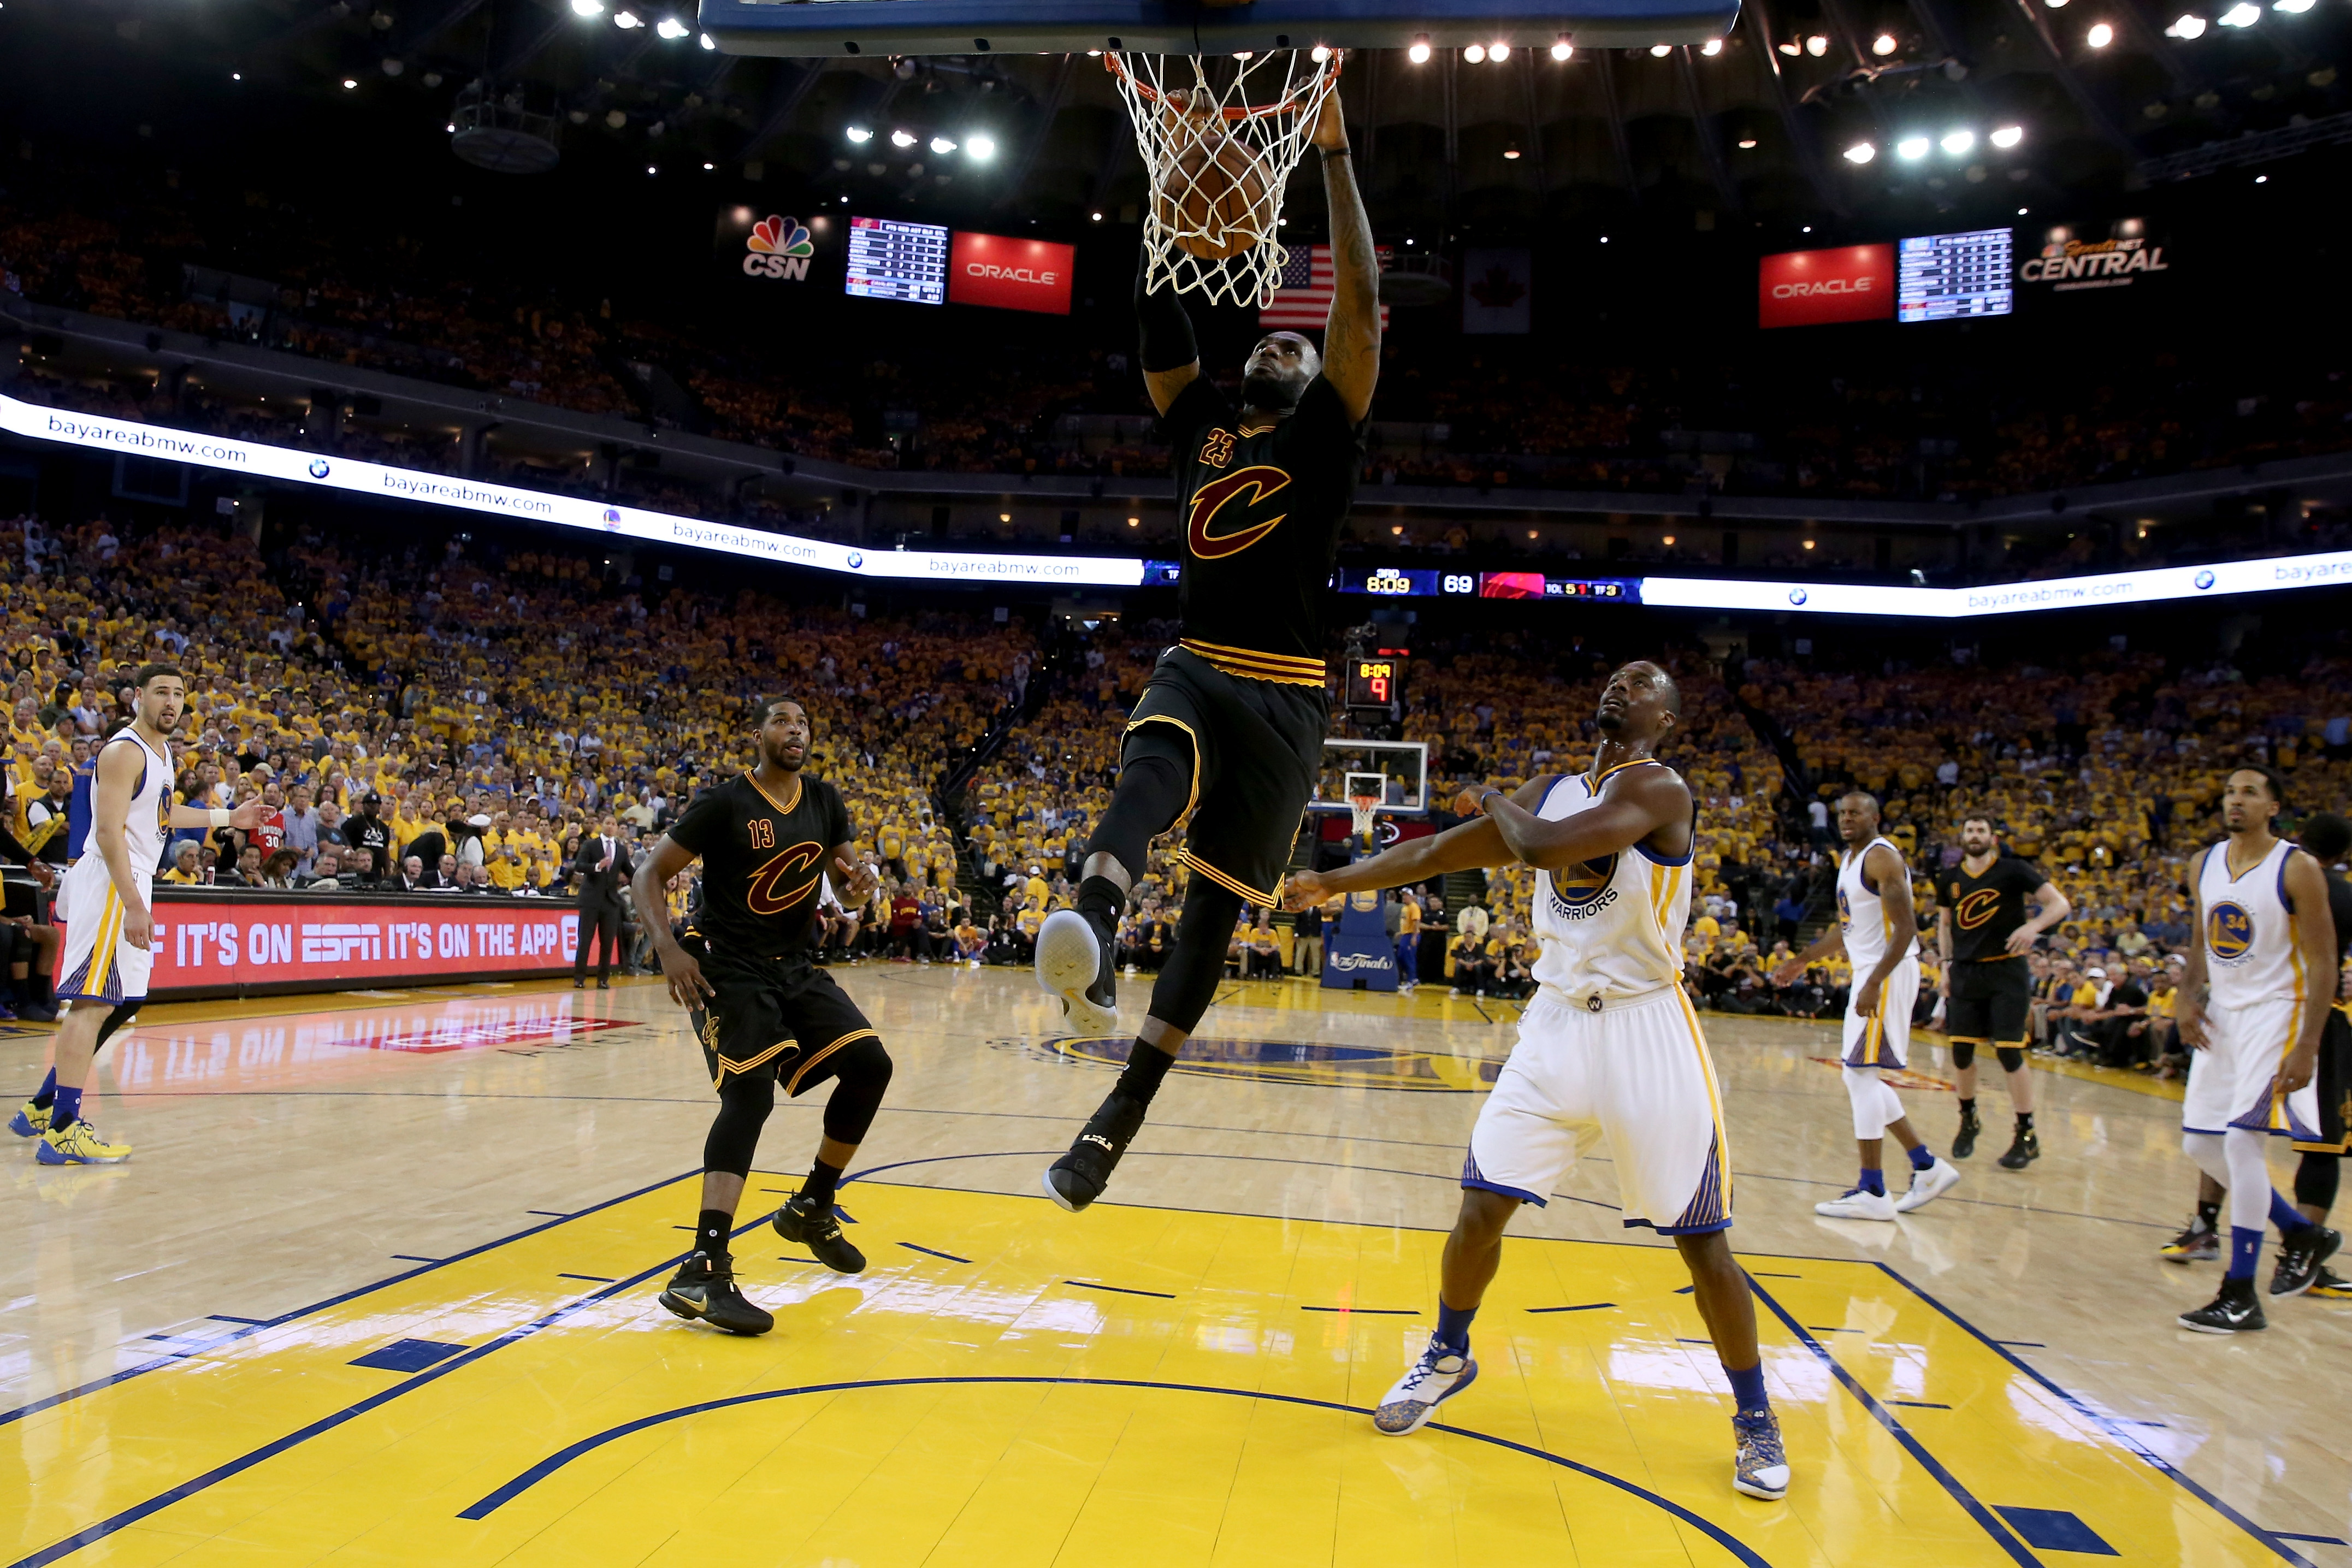 LeBron James, teammate Kyrie Irving set scoring record as Cleveland Cavaliers extend NBA Finals ...